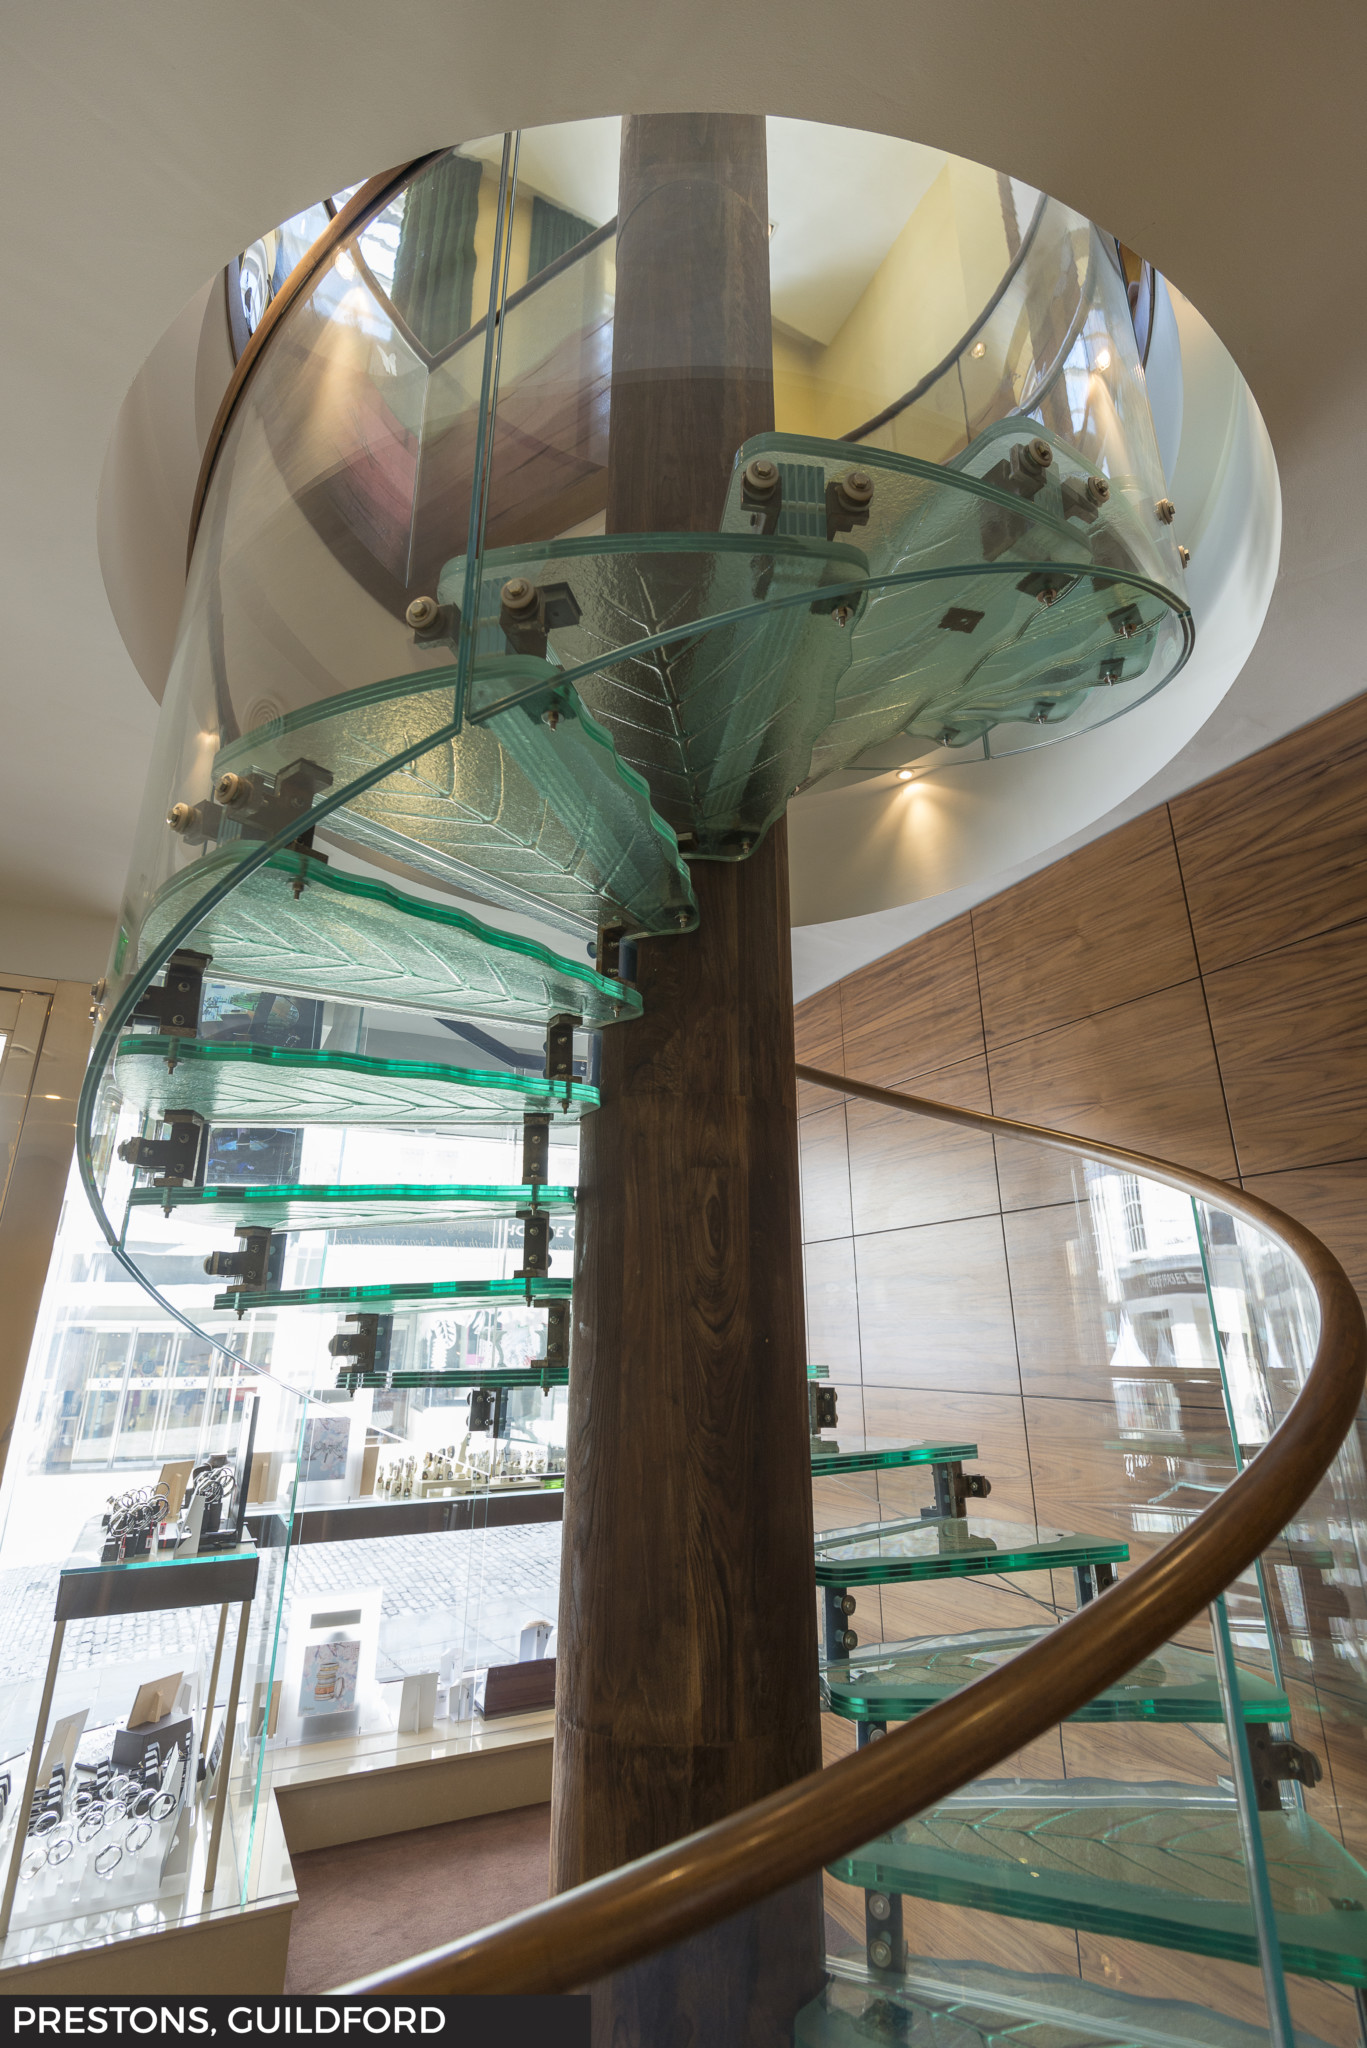 A striking spiral glass staircase connects the ground and first floors at Prestons in Guildford.